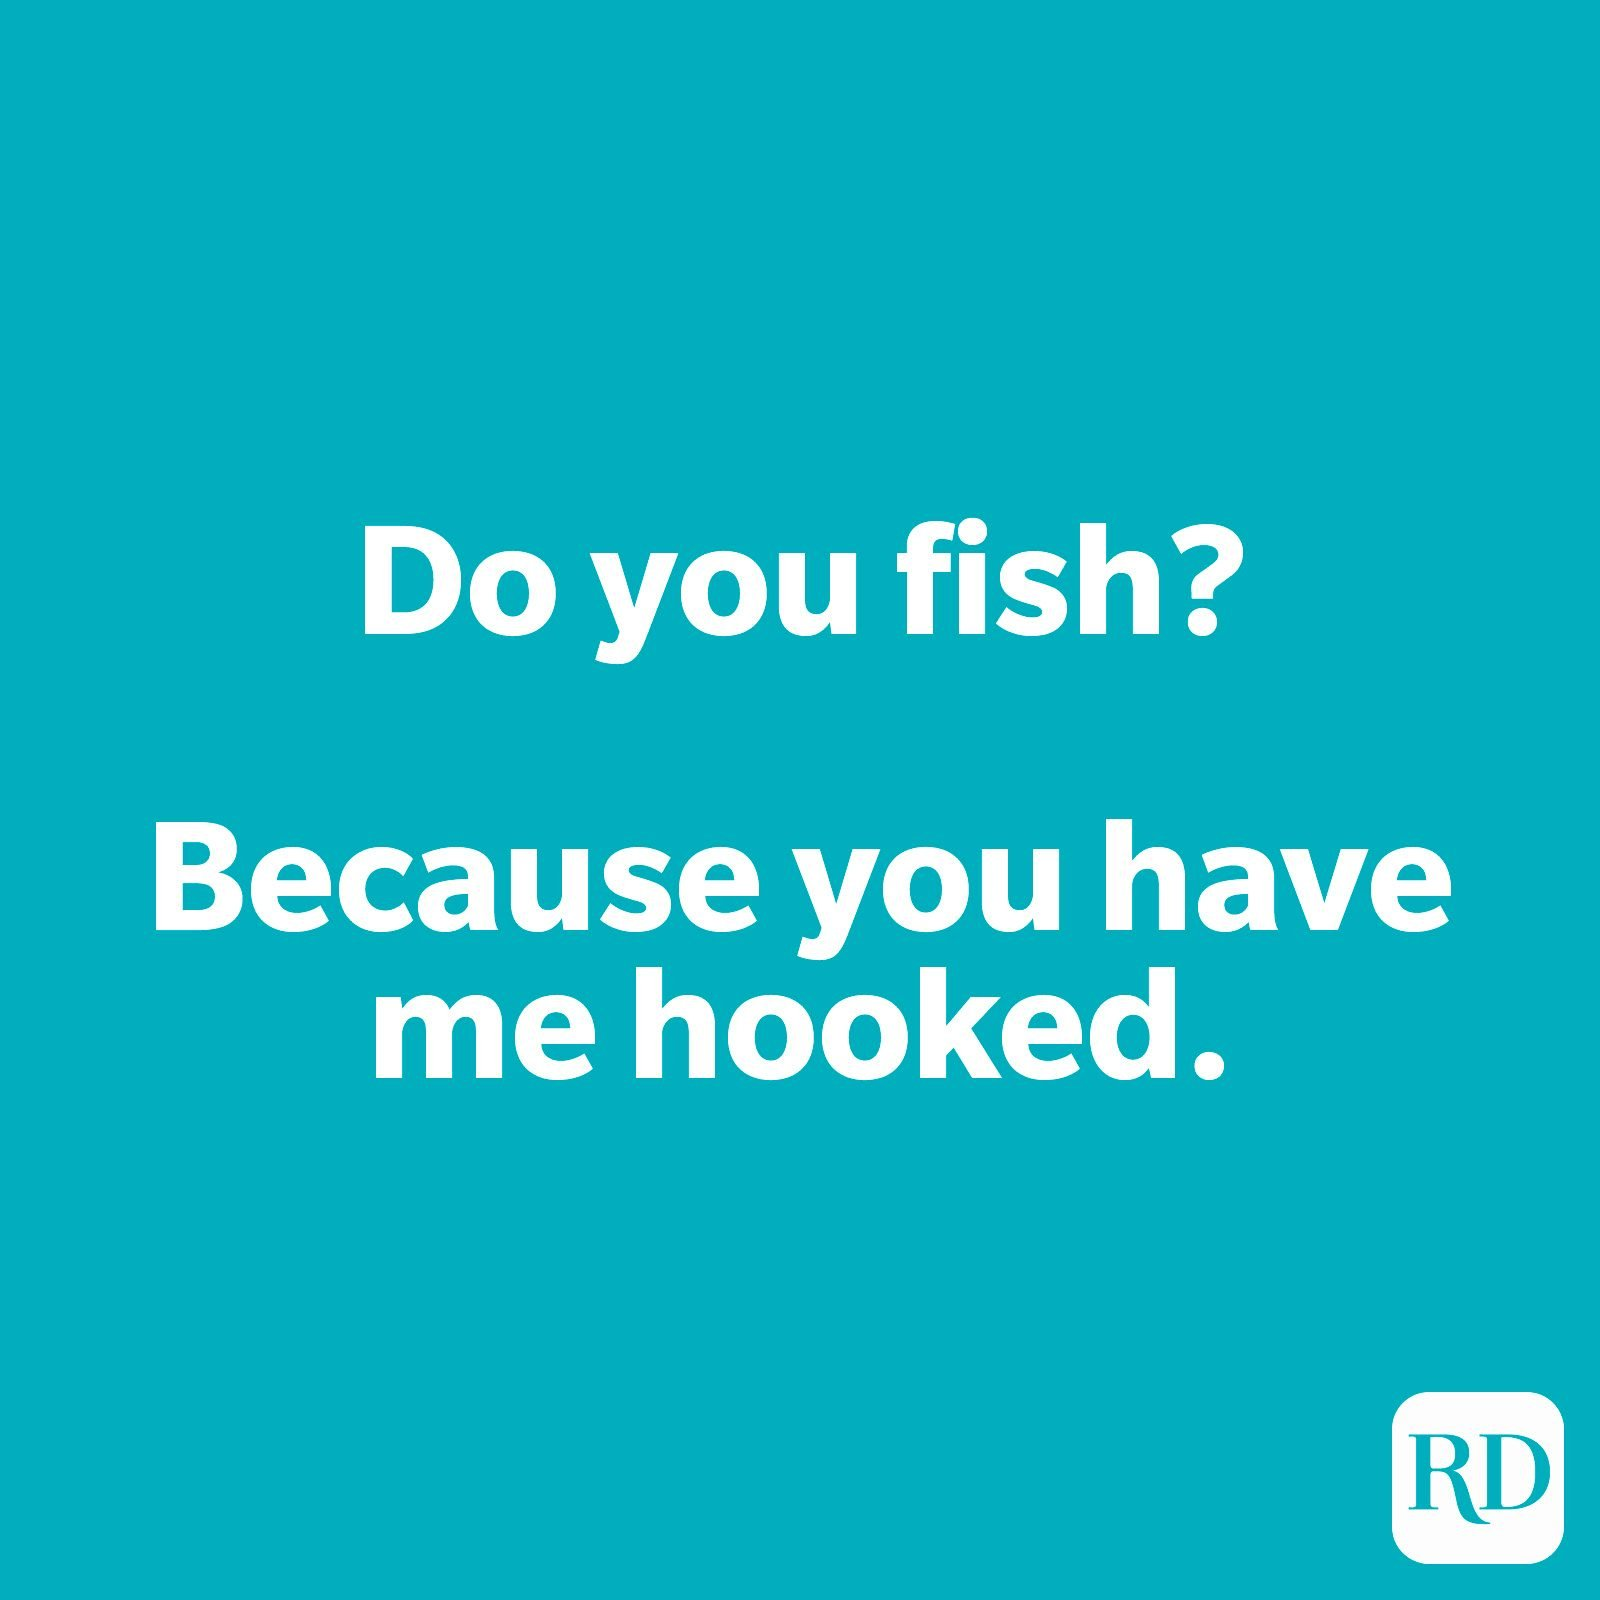 Do you fish? Because you have me hooked.